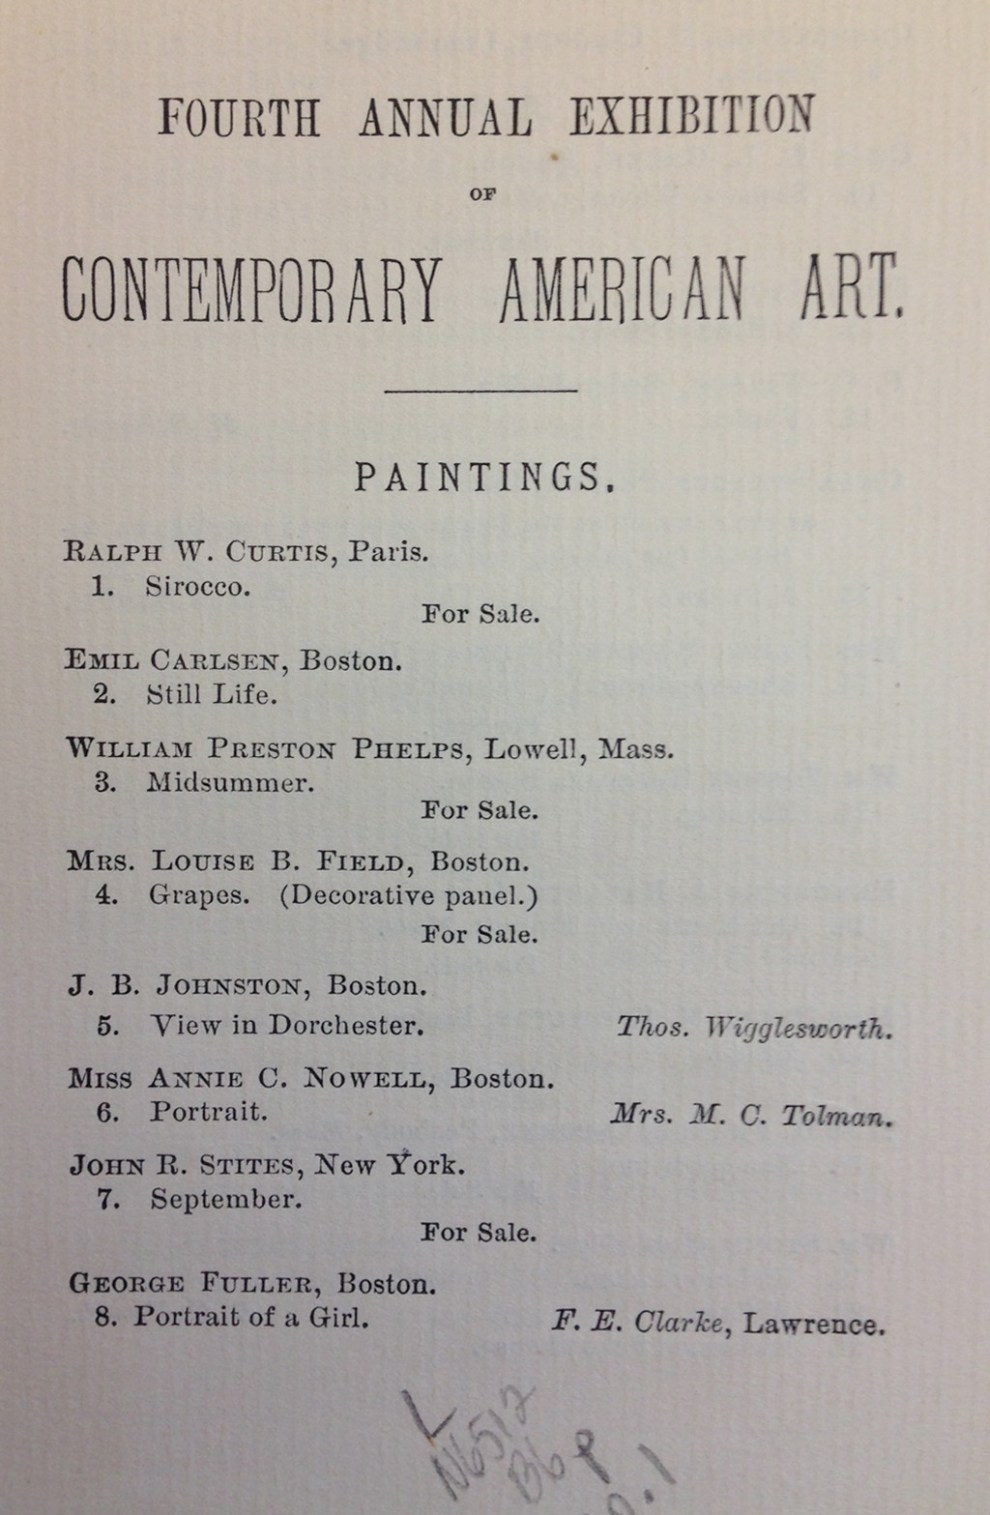 1883-Fourth-Annual-Exhibition-Fine-Arts-Boston-2